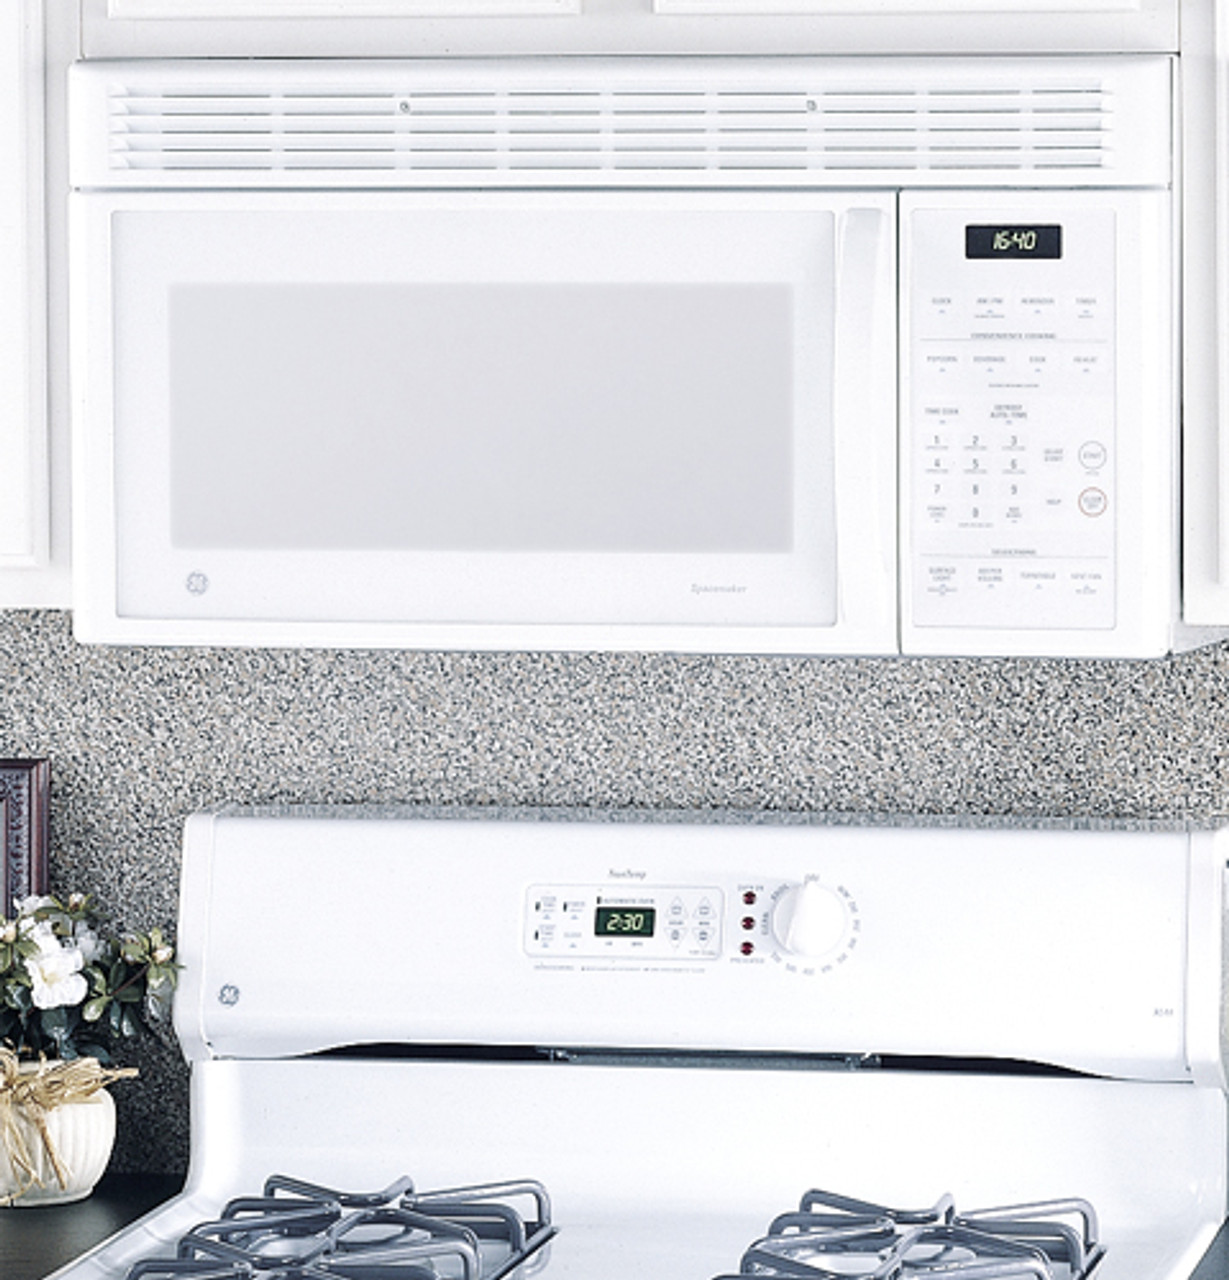 ge spacemaker xl1600 1 6 cu ft capacity 1000 watt microwave oven with outside venting jvm1640wb